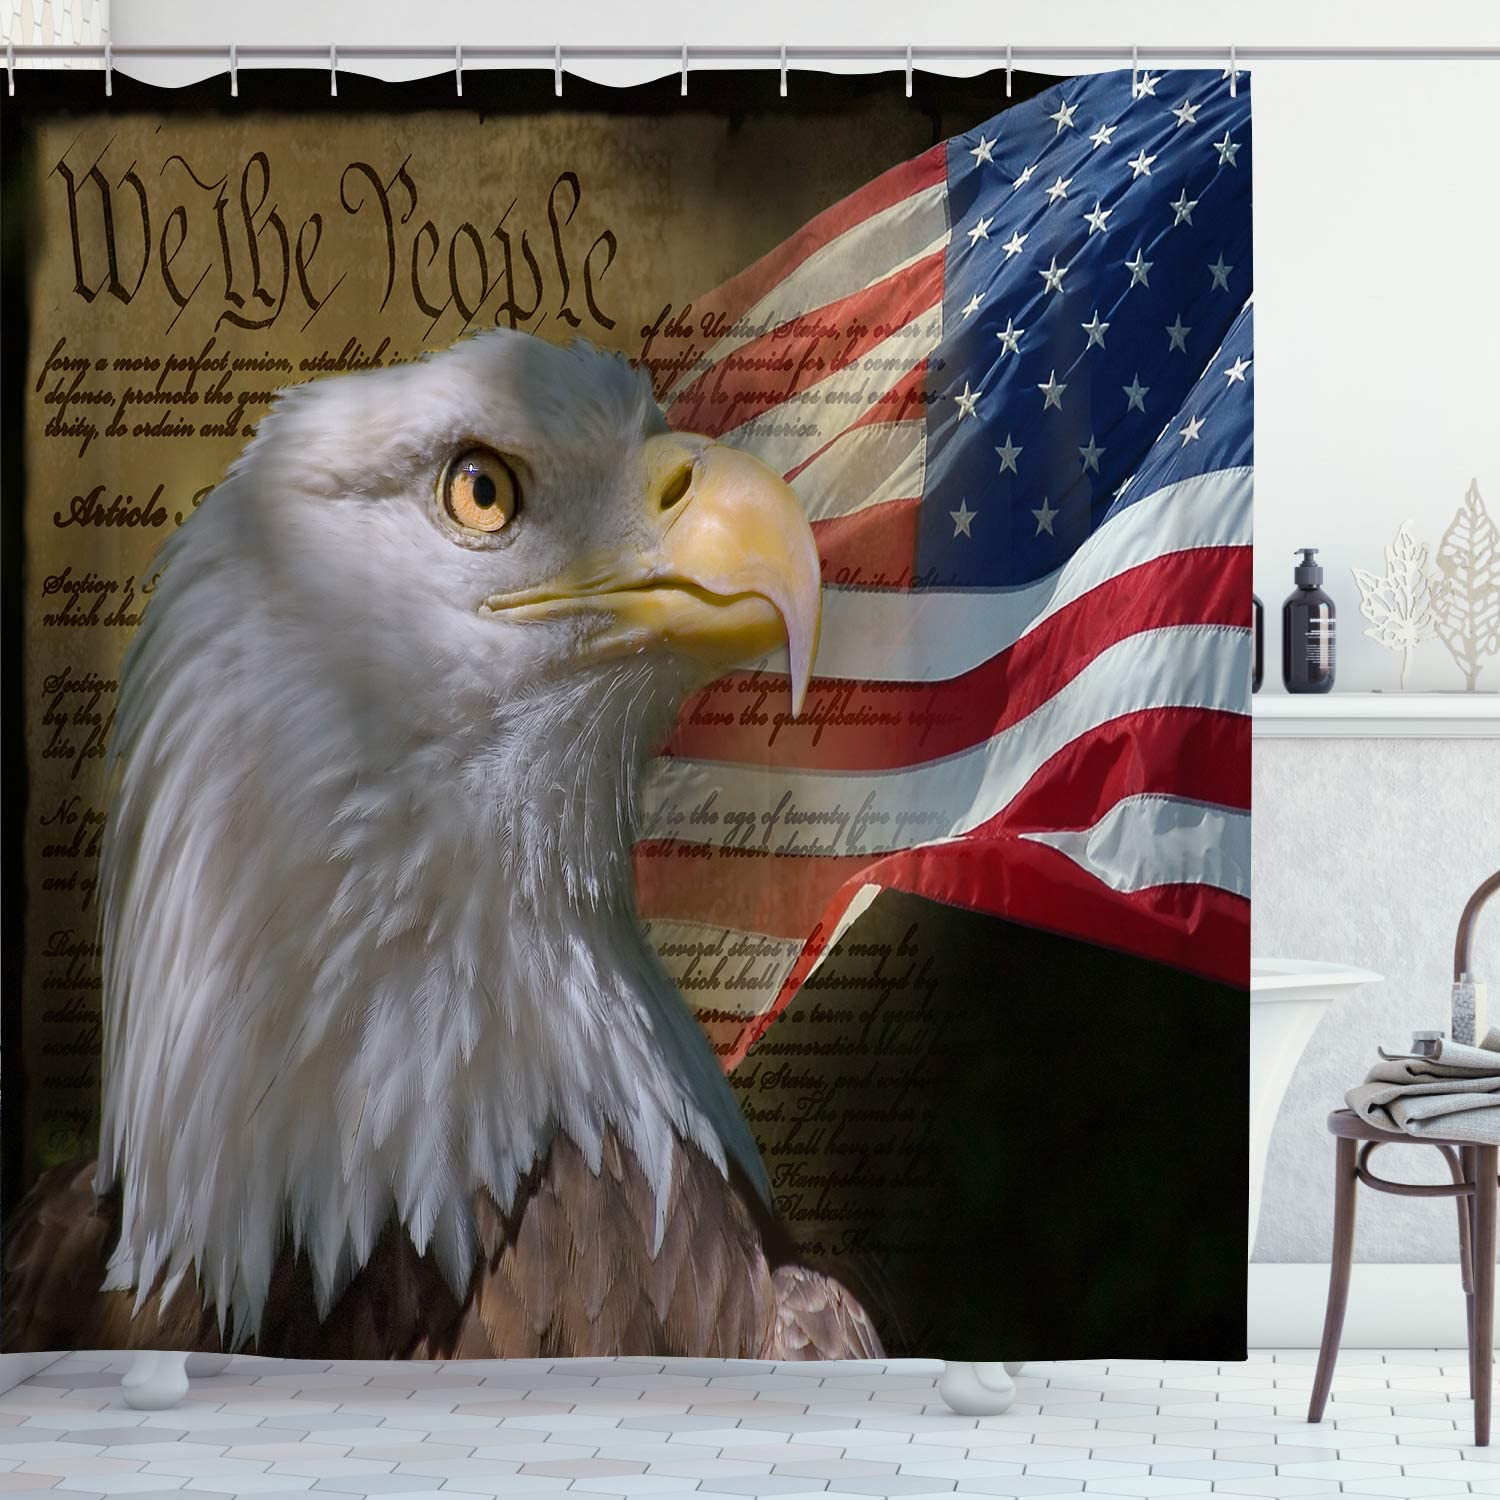 American Flag Shower Curtain USA Patriotic Eagle Stars and Stripes Flag Fourth of July Independence Day Themed Home Decor Waterproof Bath Curtains with Hooks 72 x 72 inch